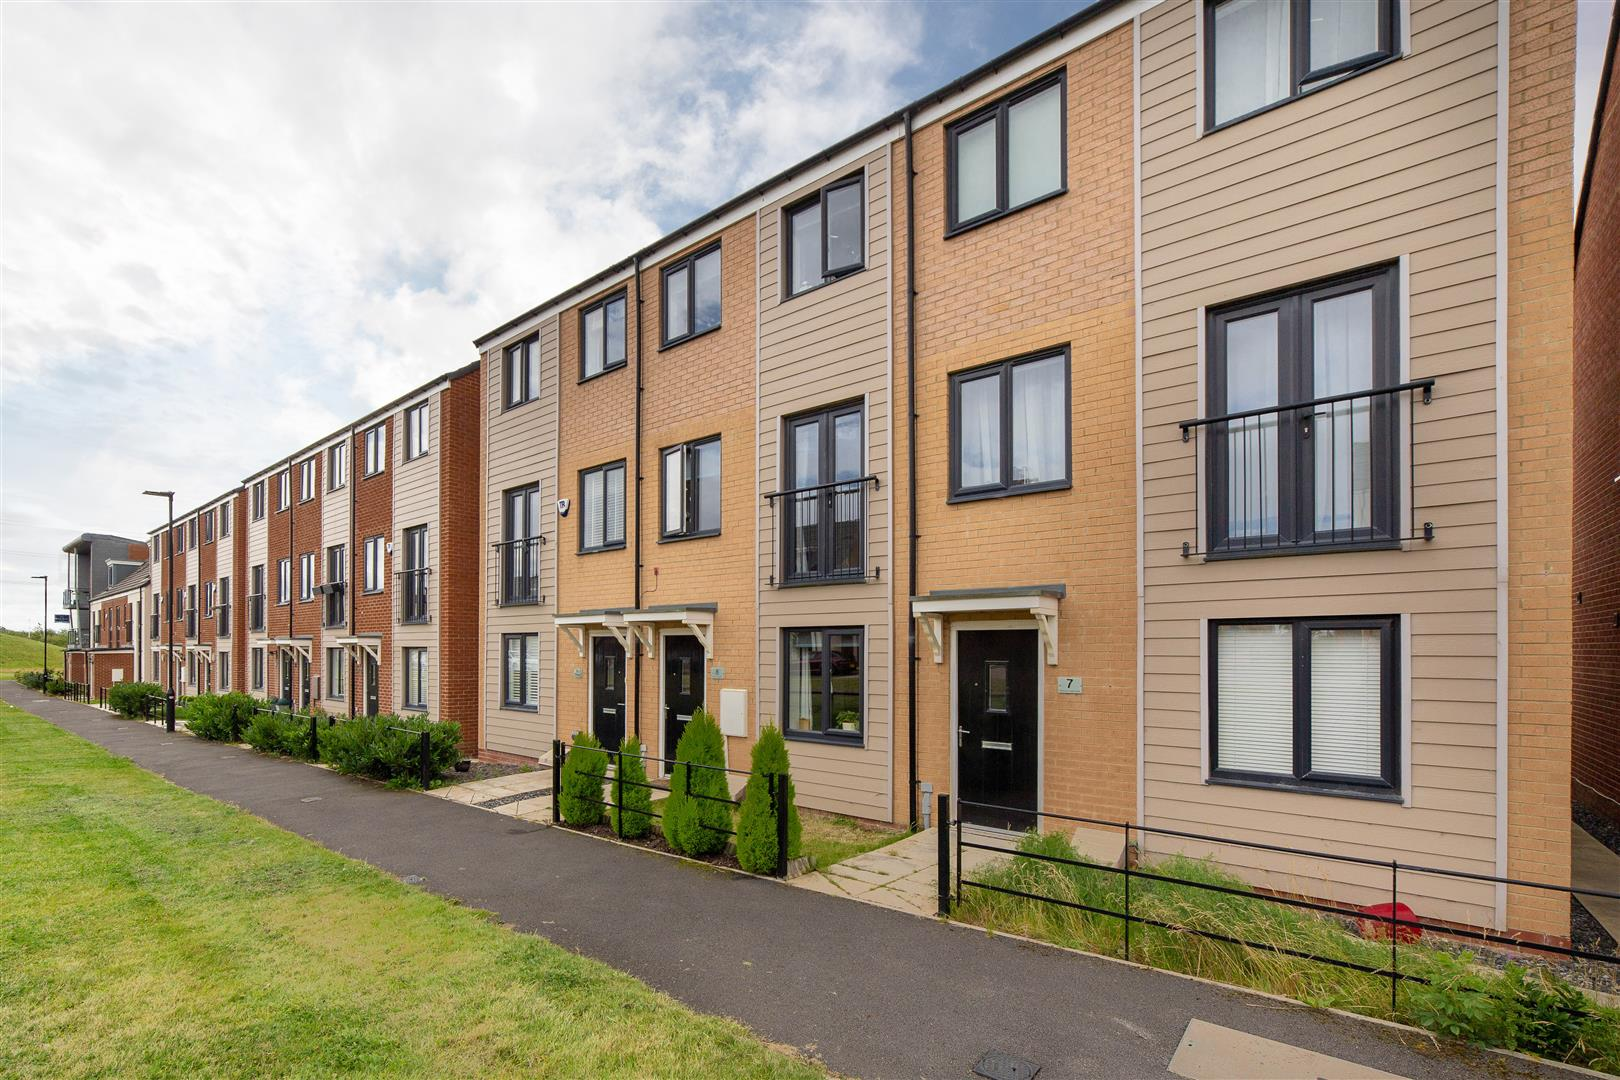 3 bed town house for sale in Newcastle Upon Tyne, NE13 9BP, NE13